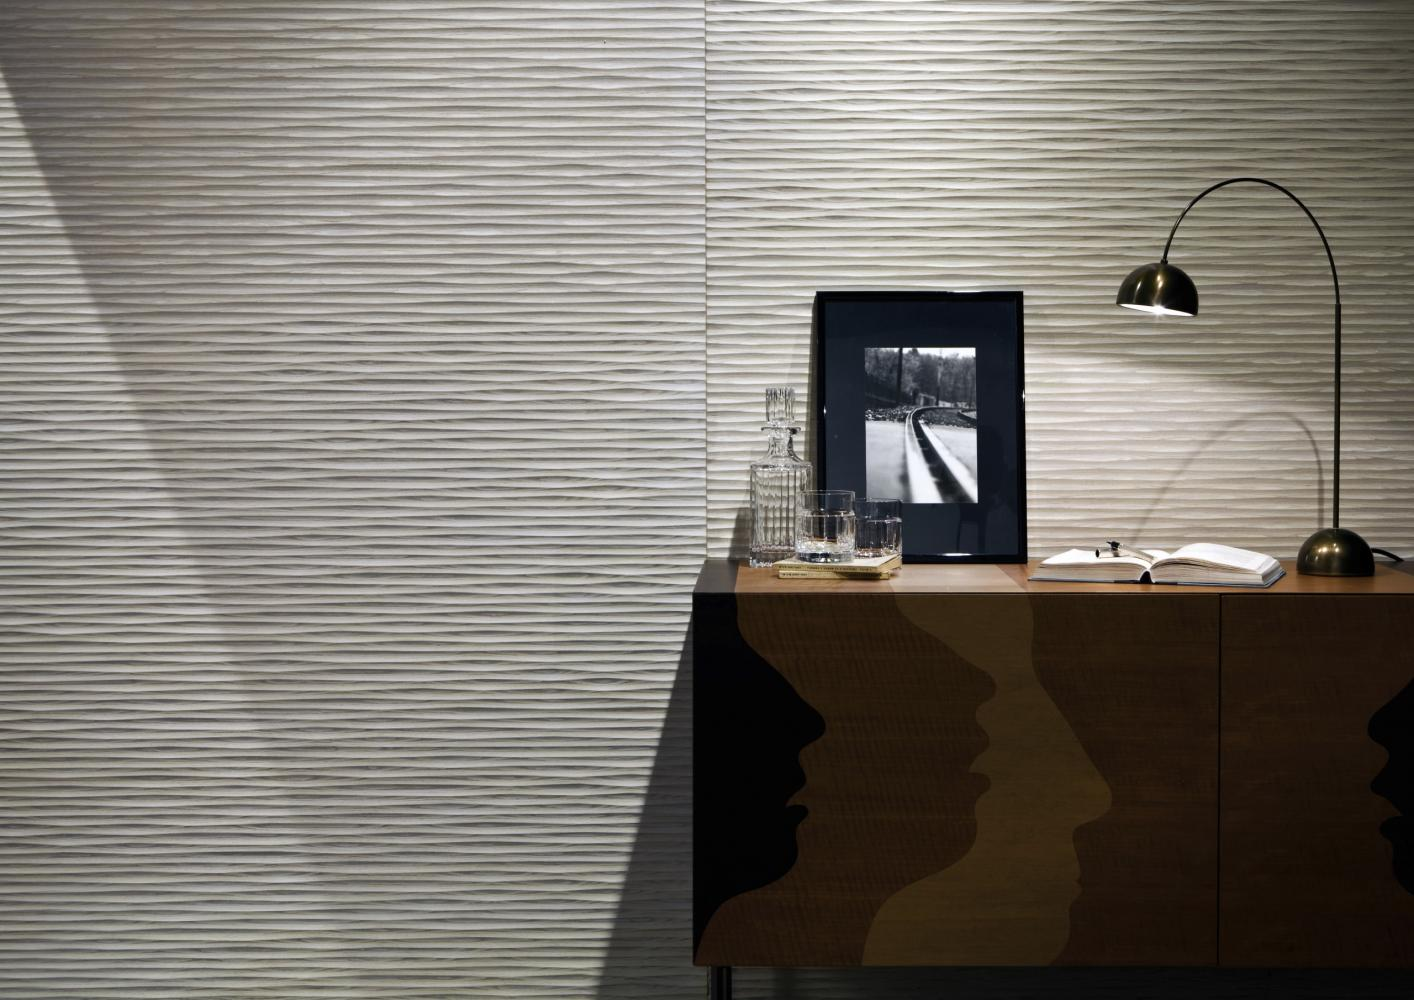 laurameroni 3d wall panels boiserie in wood, metal or fabric for luxury modern interior design